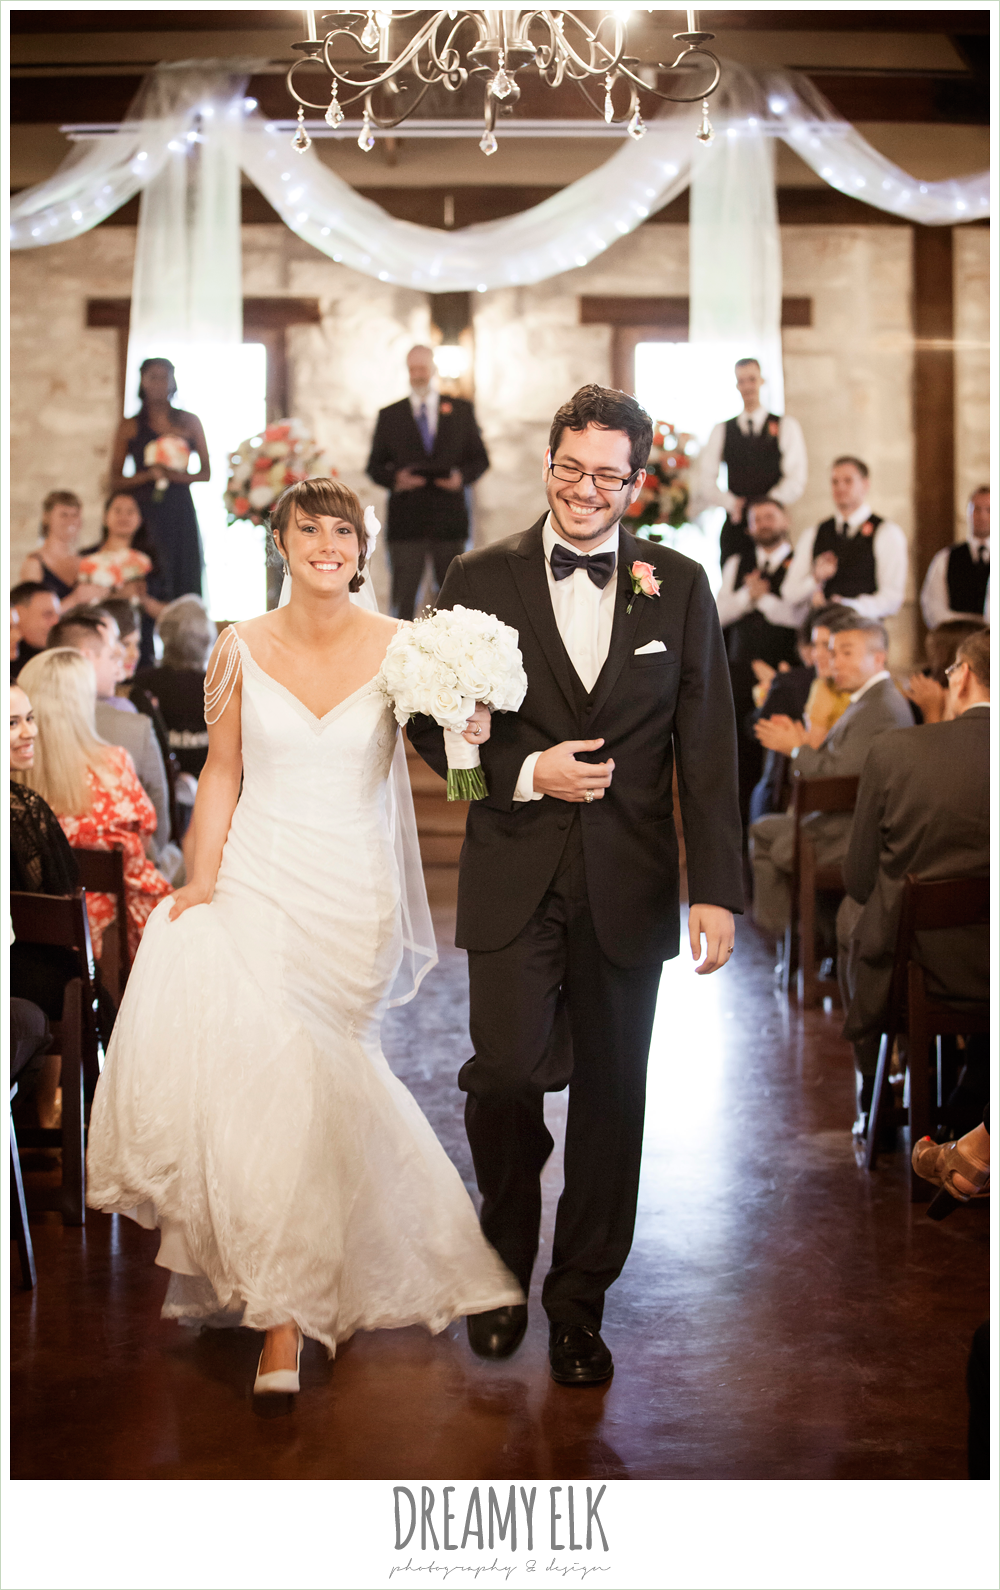 bride and groom walking down the aisle, white wedding bouquet, lace wedding dress, pecan springs, houston, texas, photo {dreamy elk photography and design}